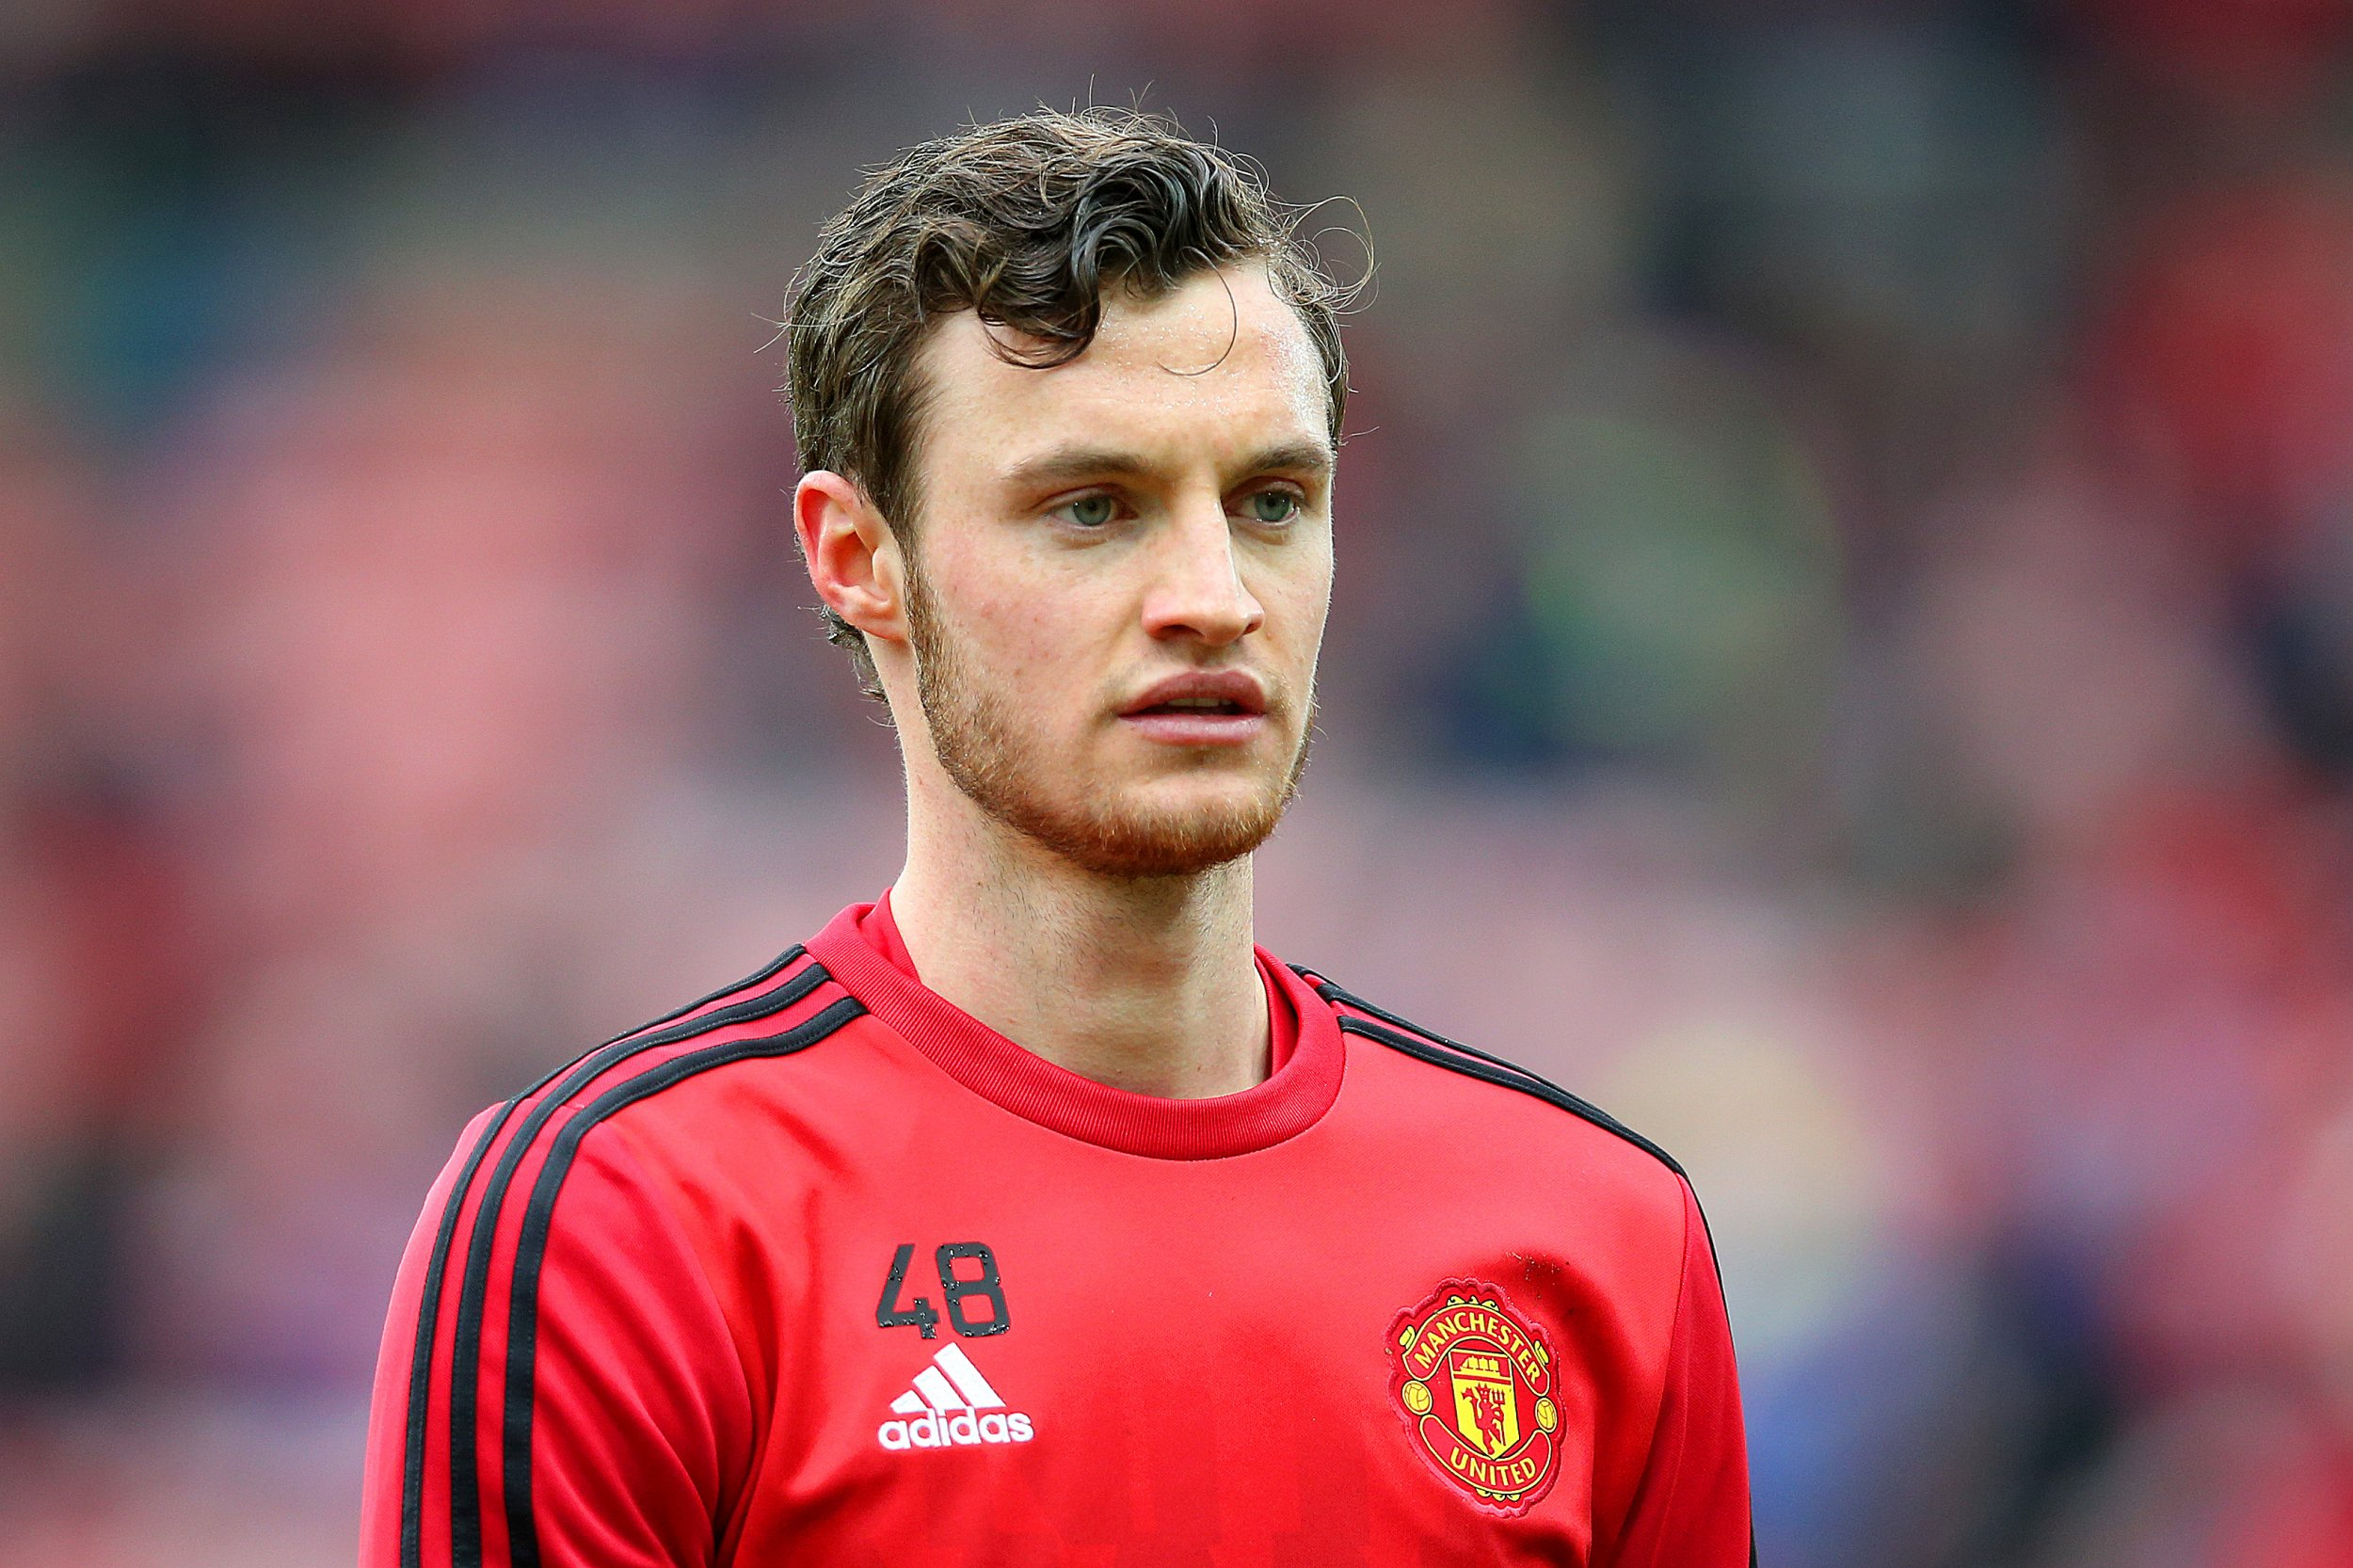 Manchester United striker Will Keane has suffered frequently with injuries.